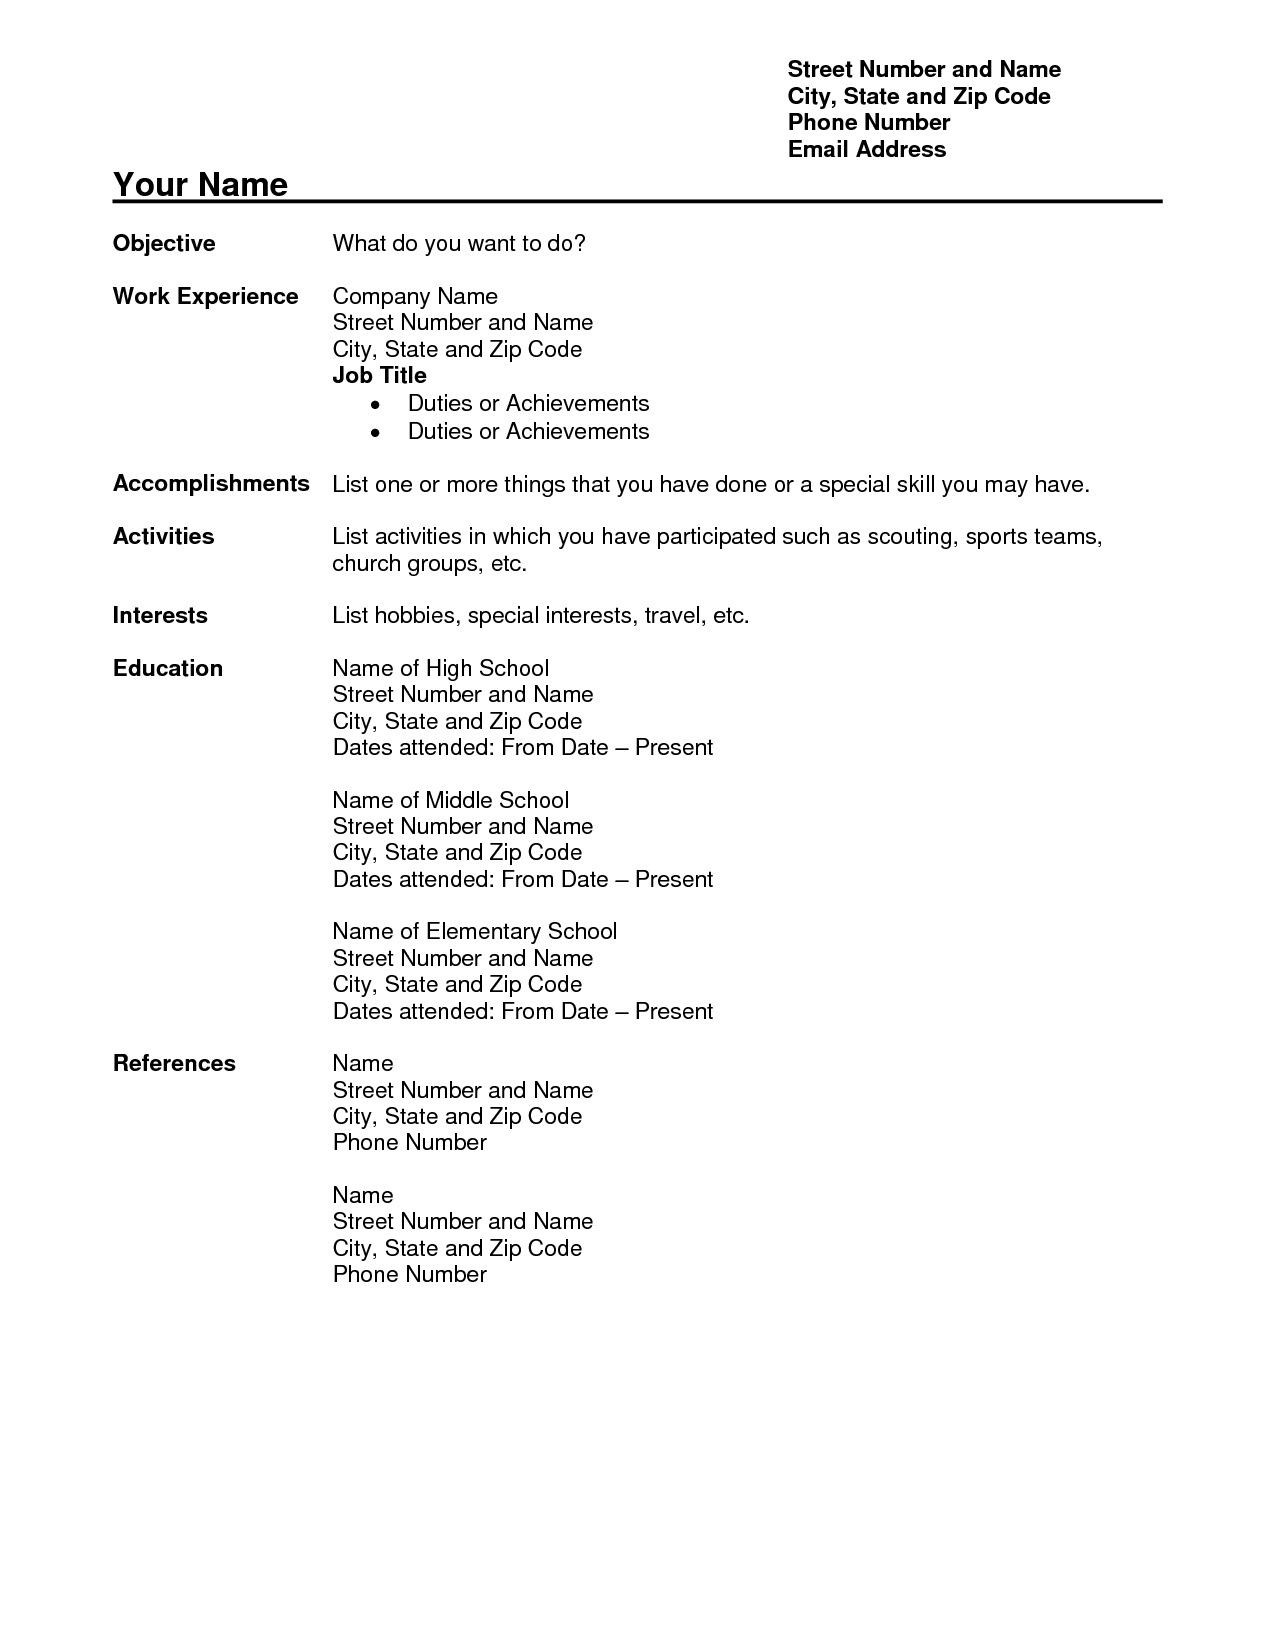 free teacher resume templates download free teacher resume templates download free teacher resume templates microsoft - Standard Resume Template Microsoft Word